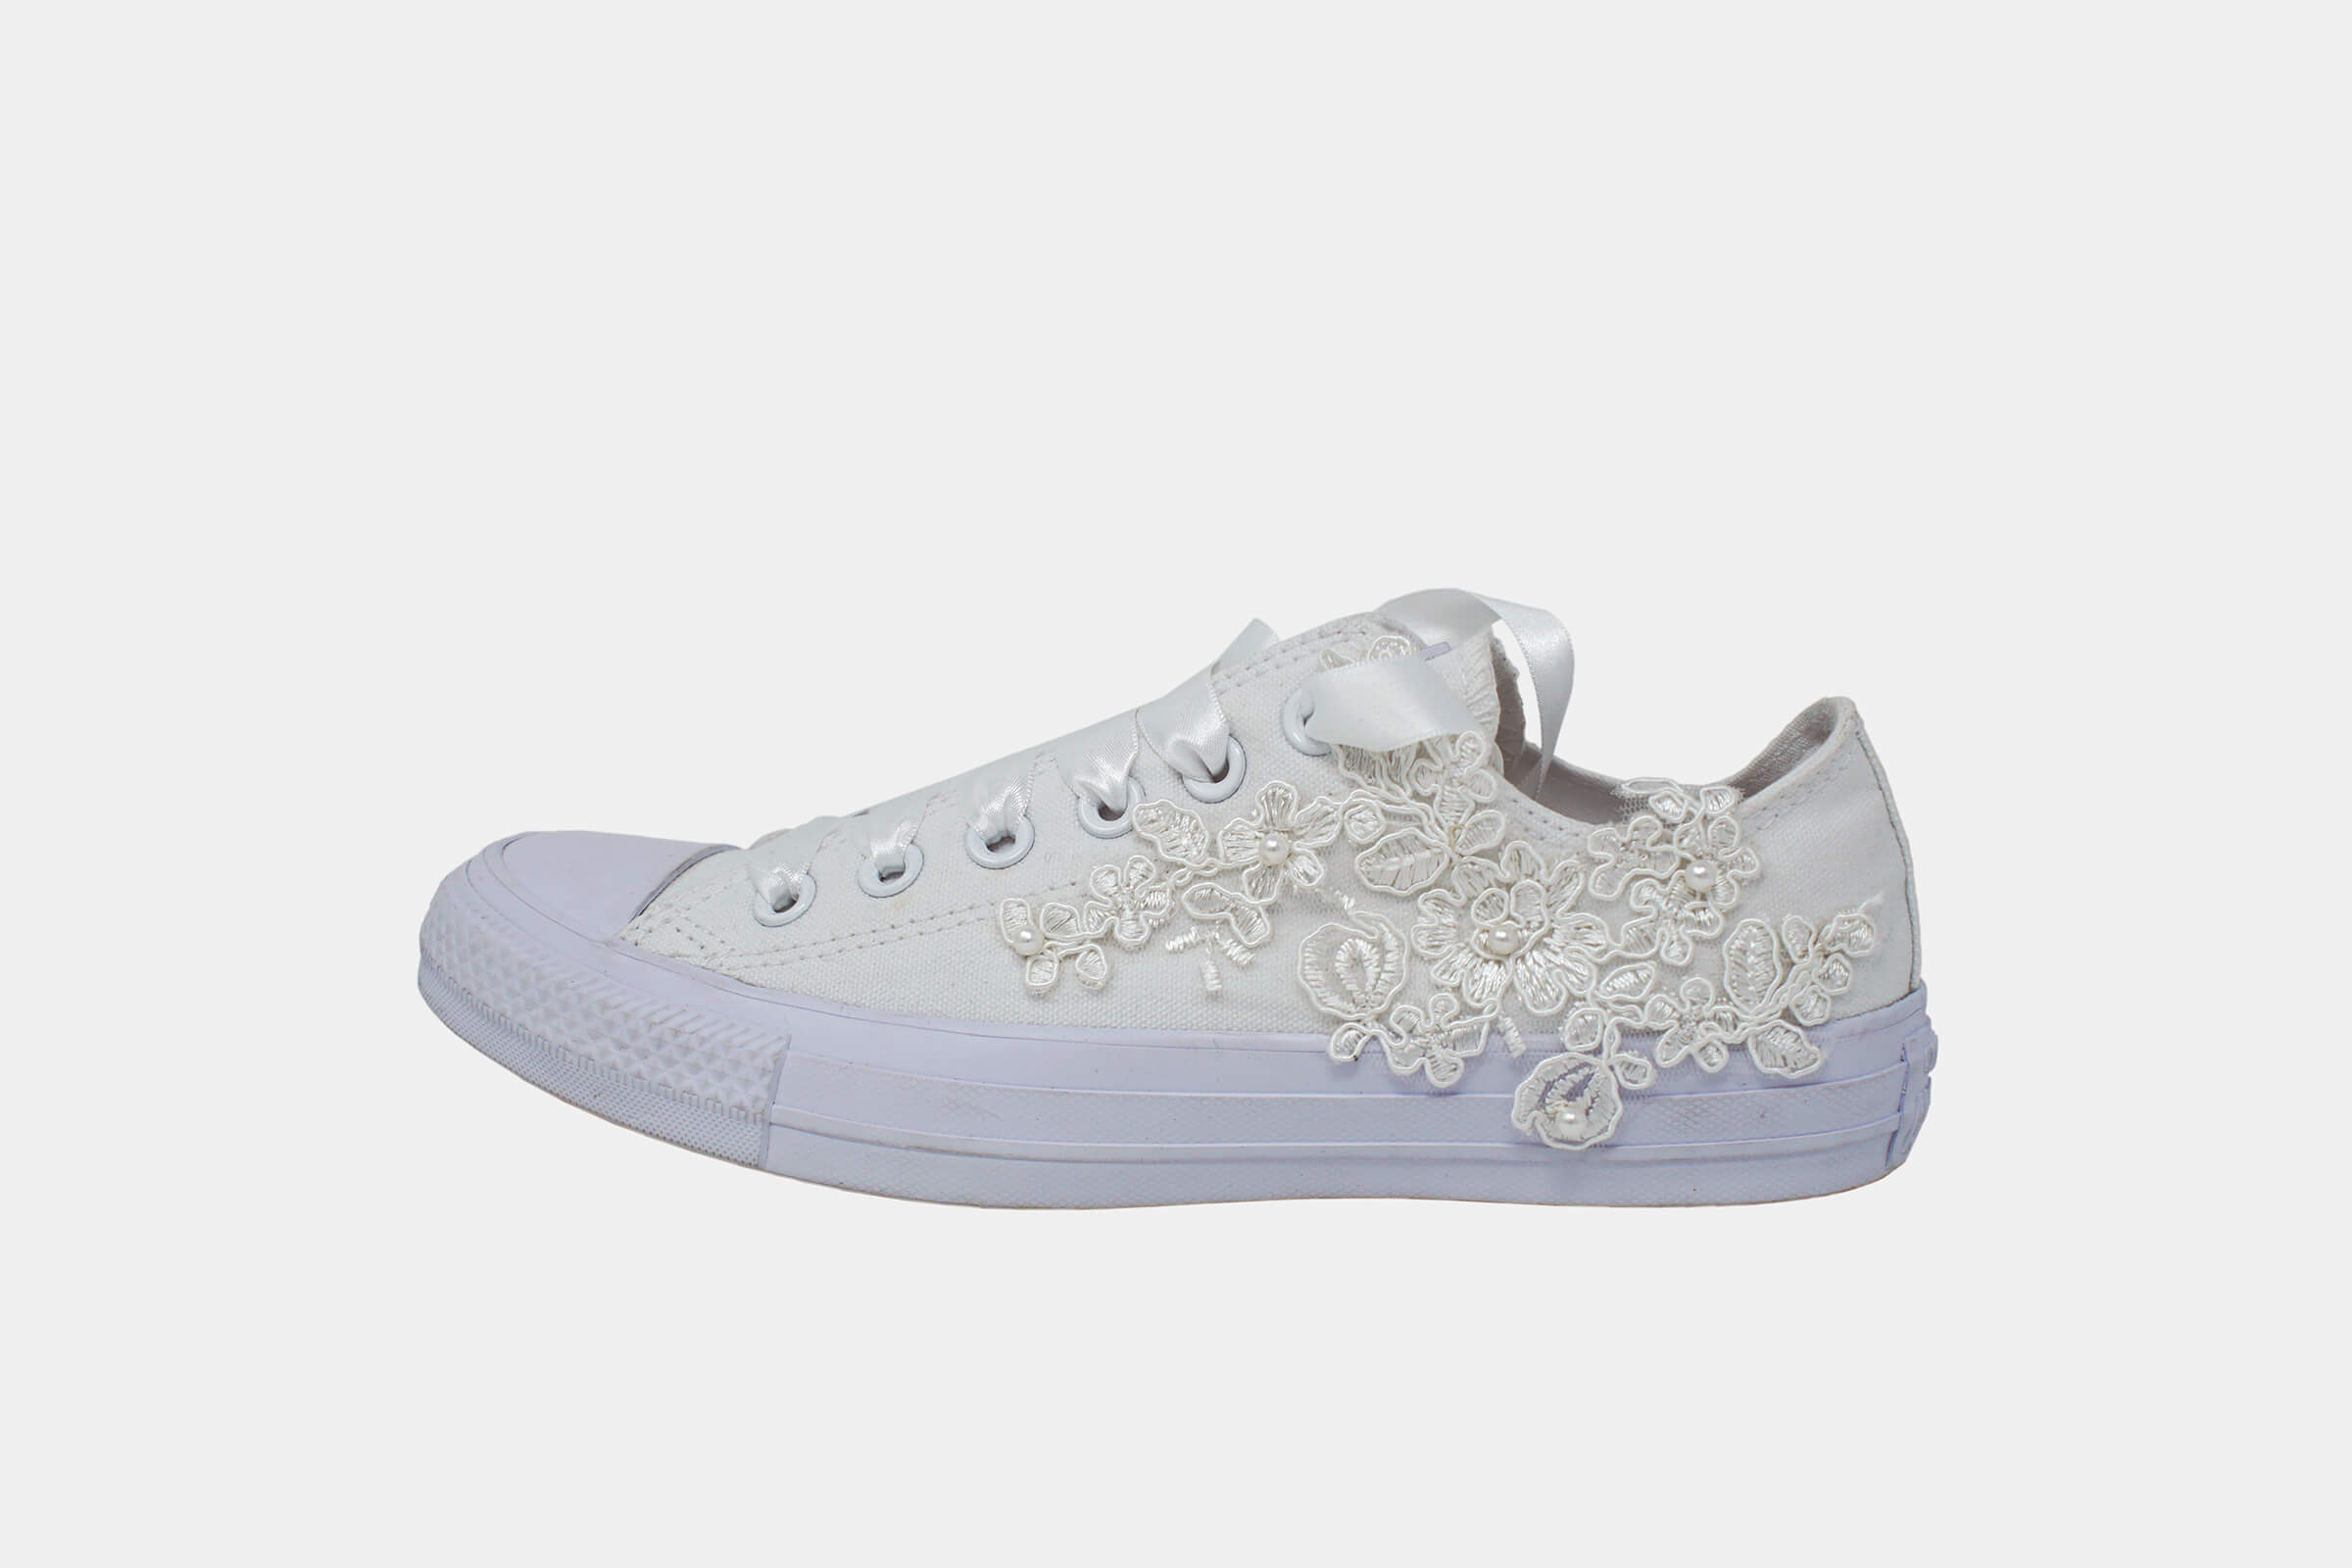 Converse/Chuck Taylor/Lacy